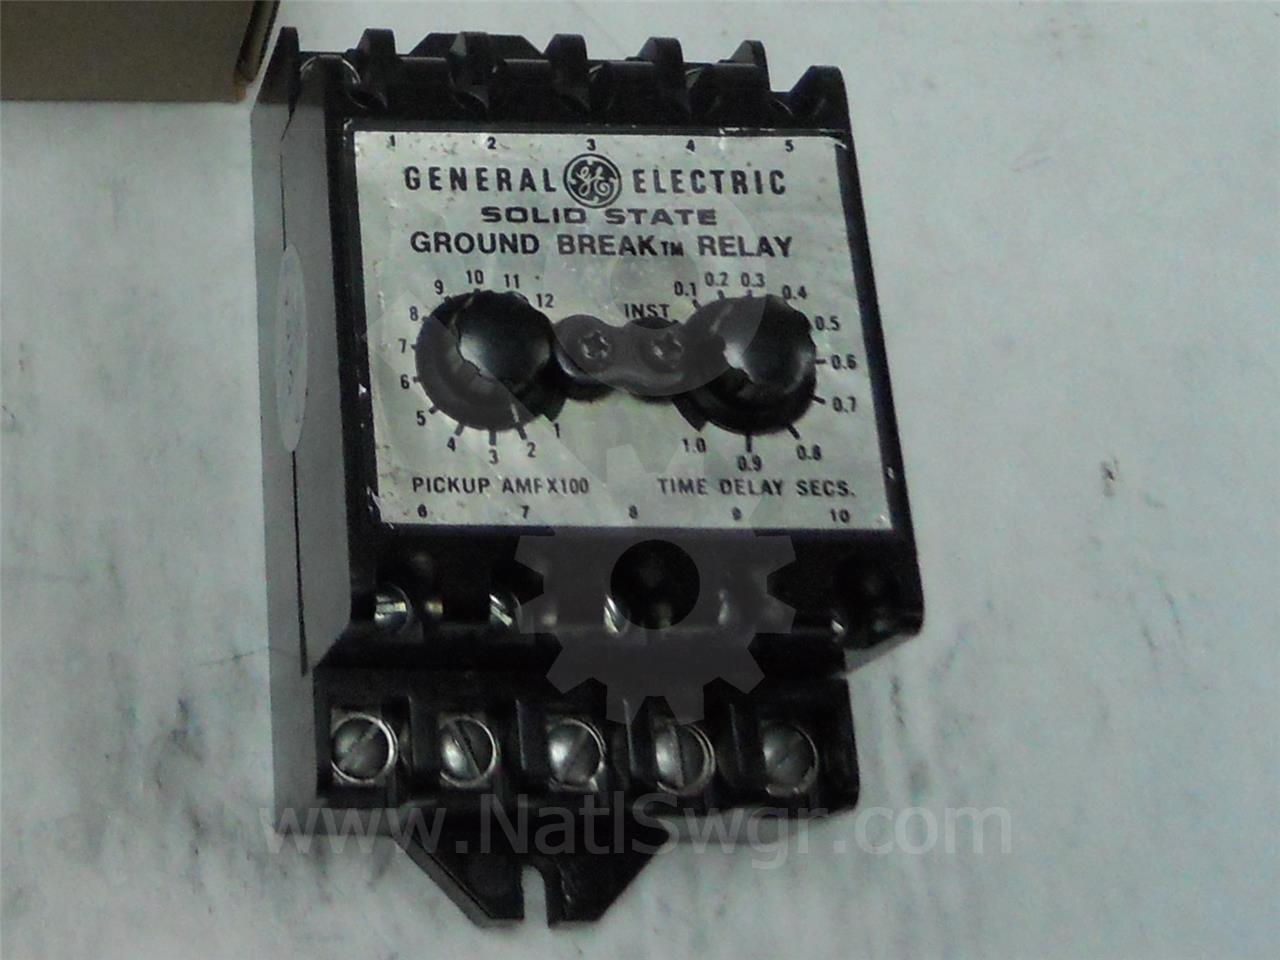 TGSR12Z GE / General Electric TGSR GROUND FAULT RELAY 120VAC, 100-1200A, ADJ TRIP RANGE, WITH ZONE SELECTIVE